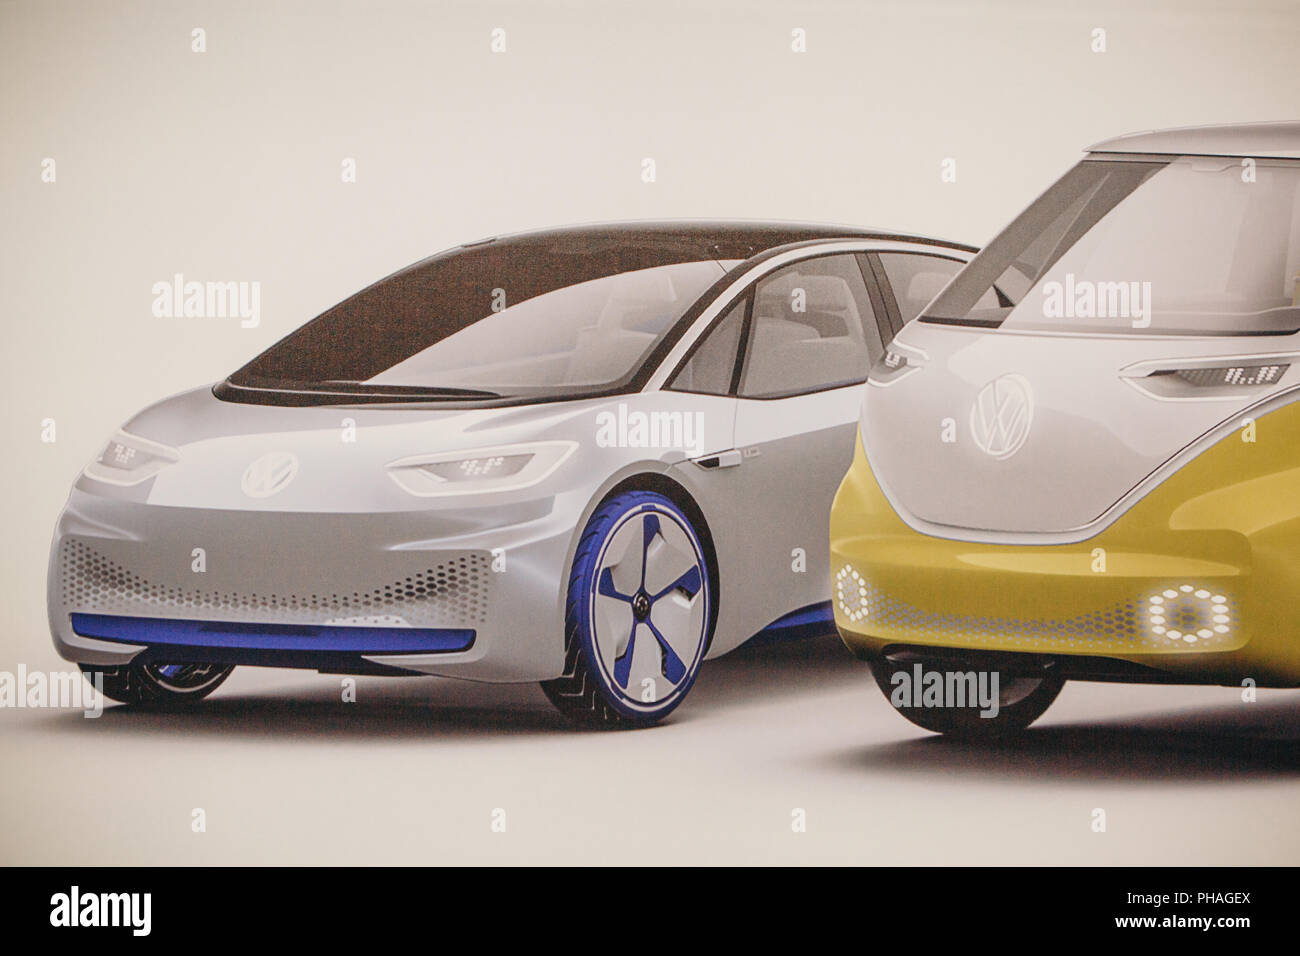 Berlin, August 29, 2018: Photo image of the new concept cars from Volkswagen presented at the official Auto Show Drive - the Volkswagen Group Forum in Berlin. - Stock Image